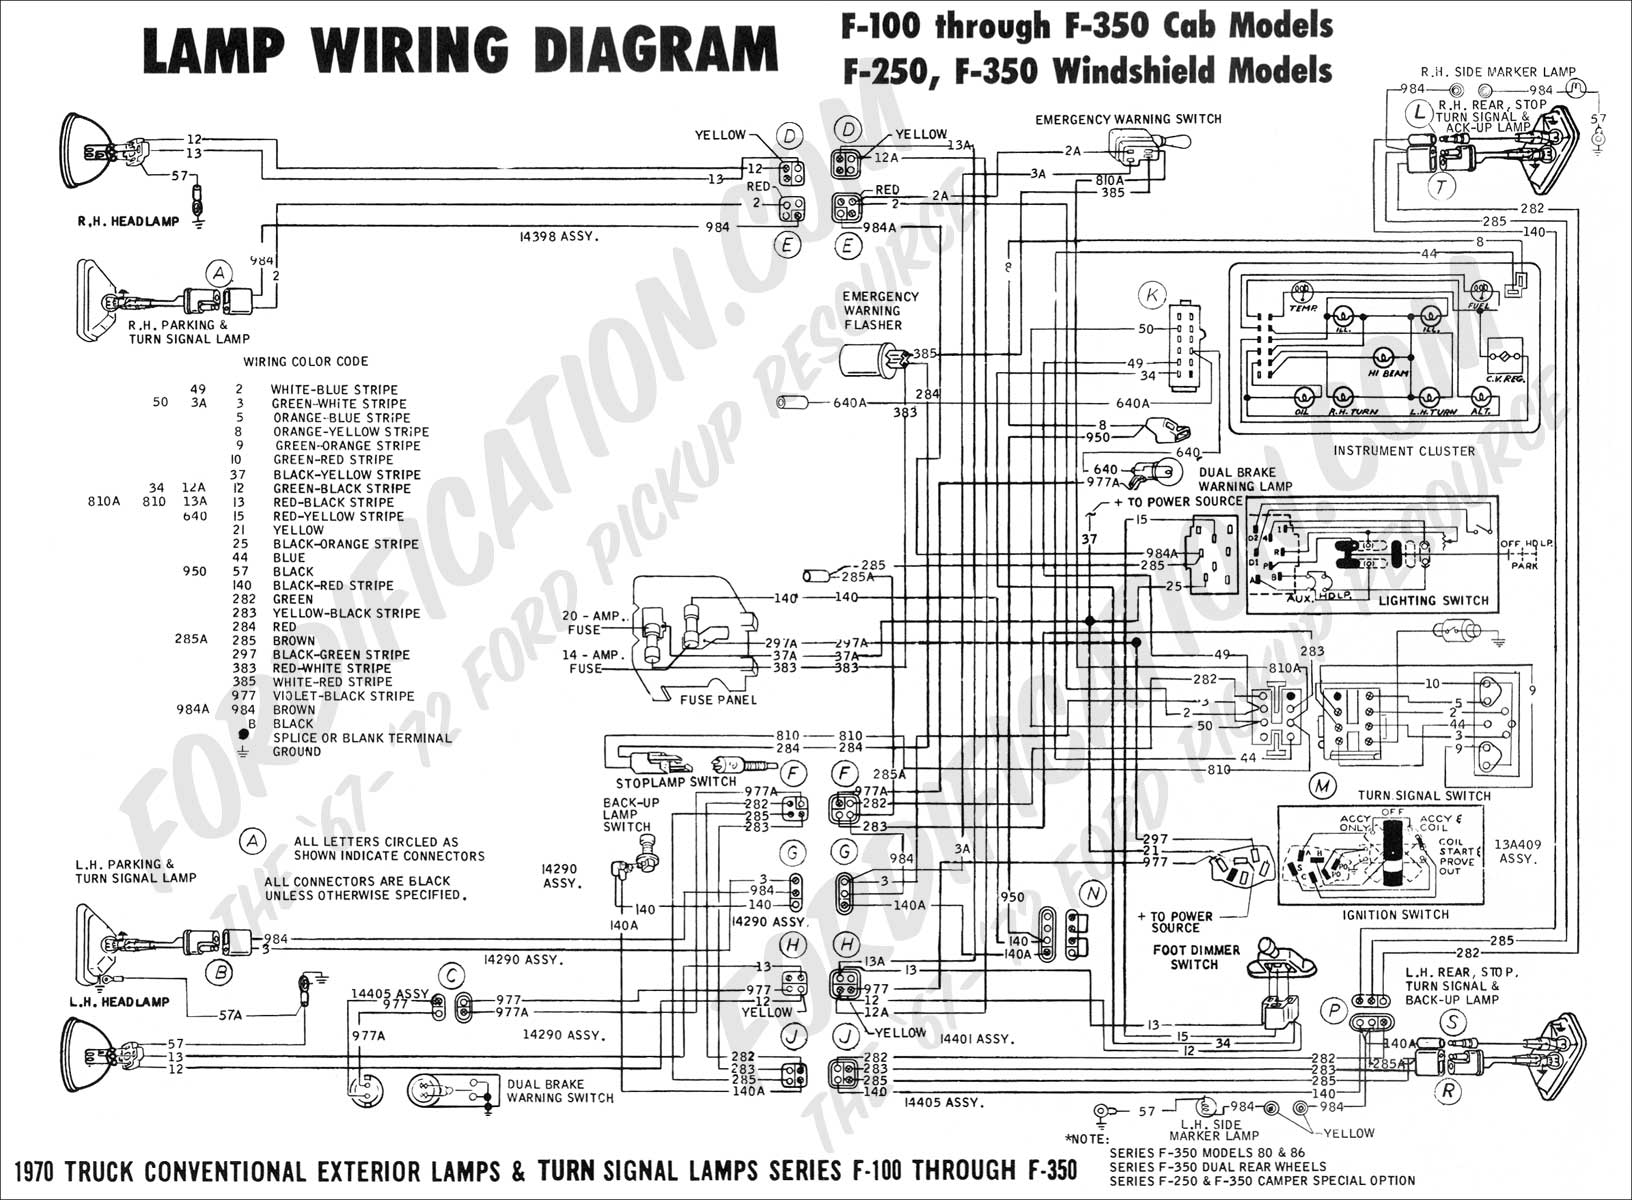 wiring diagram_70ext lights01 ford truck technical drawings and schematics section h wiring 1998 ford f150 wiring diagram at virtualis.co